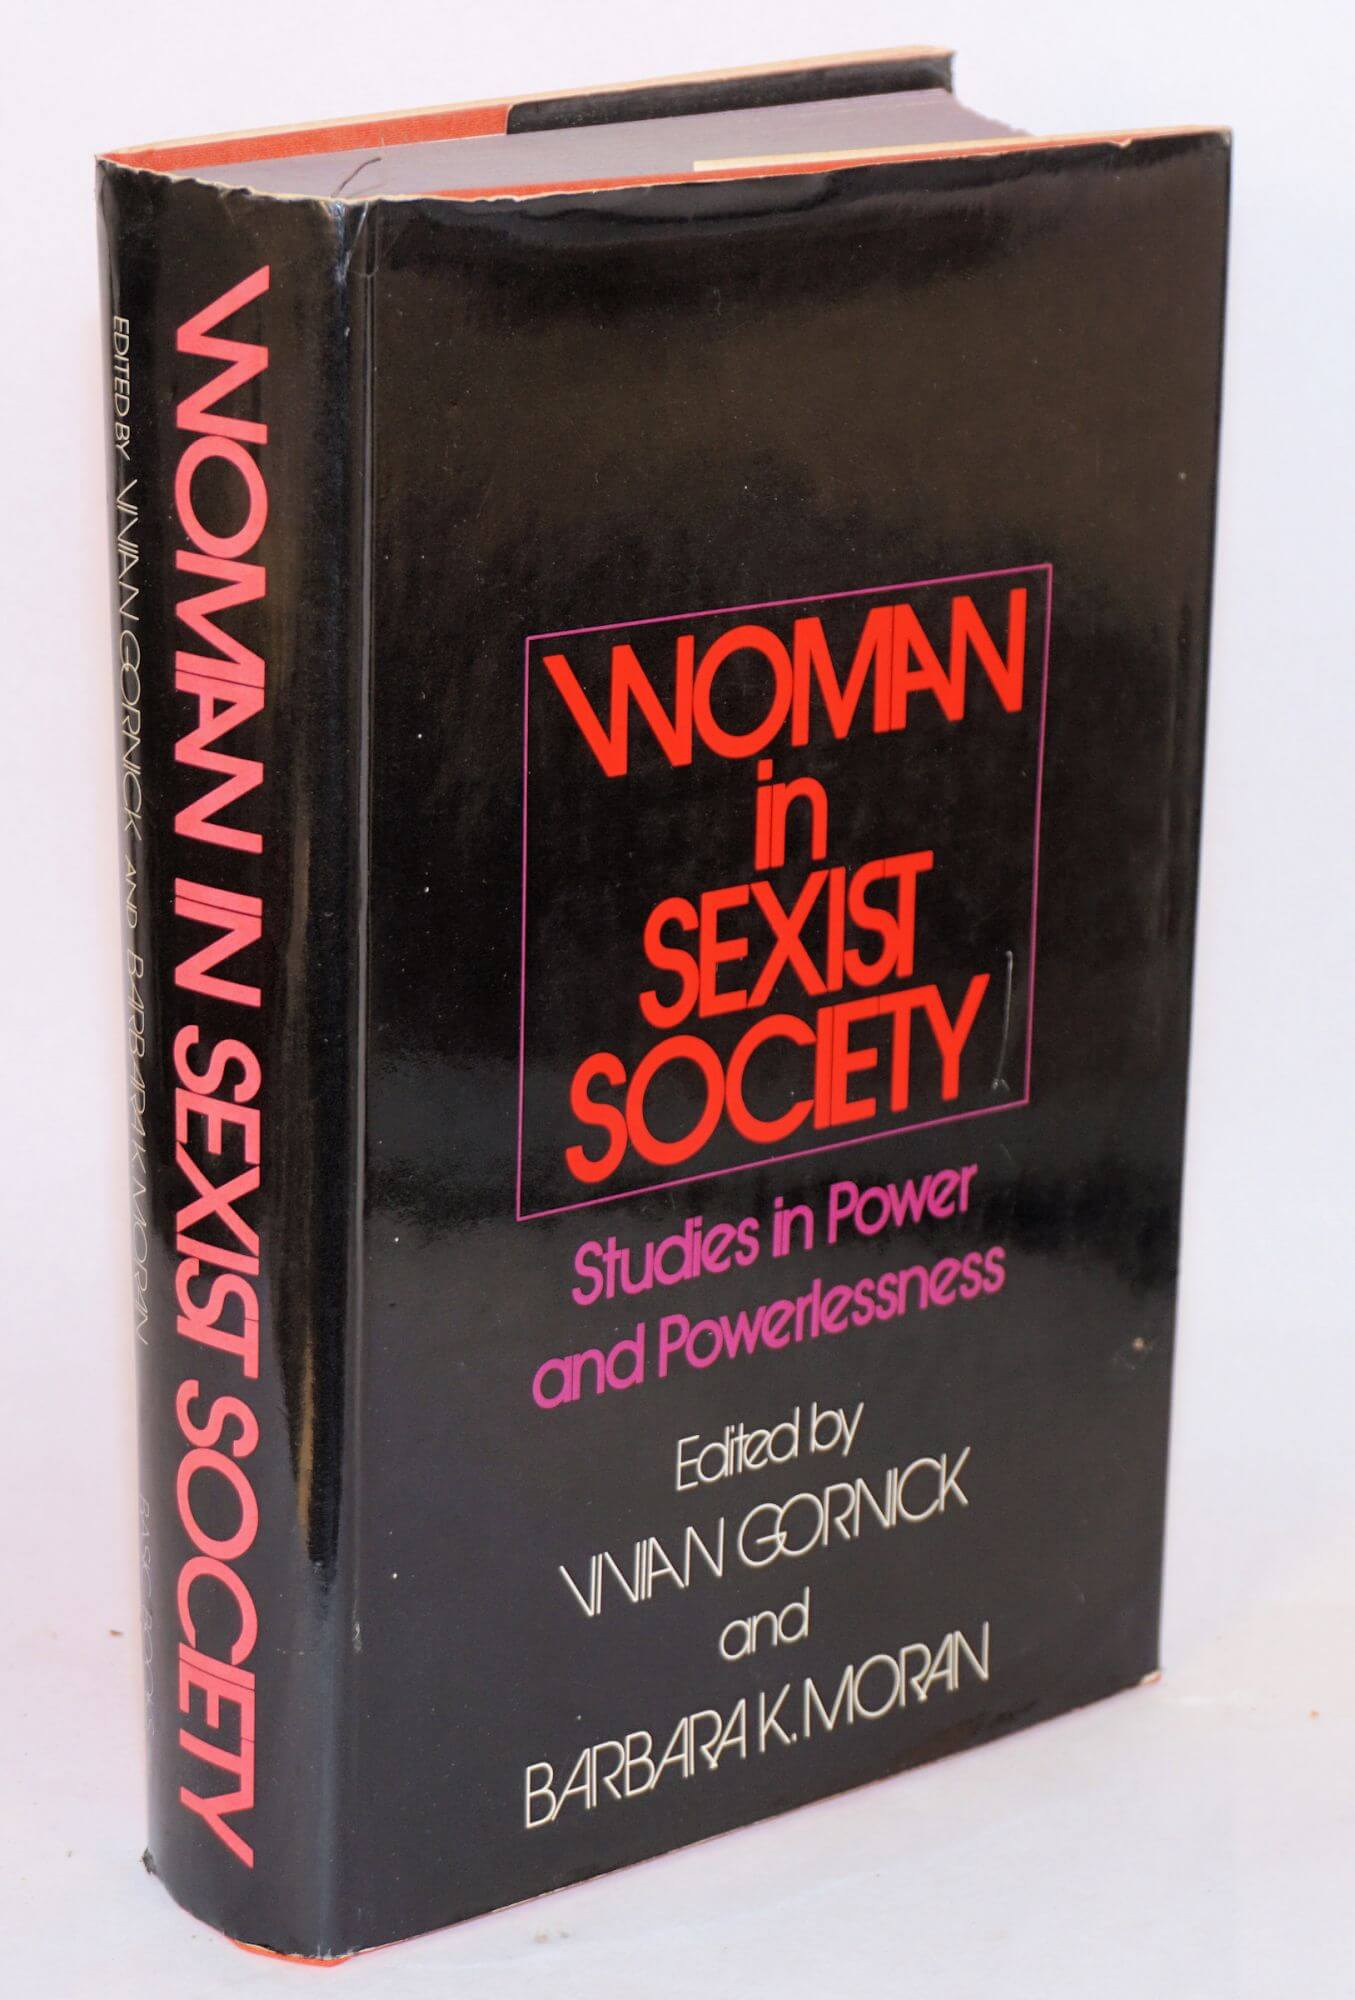 The 1971 anthology <em>Woman in Sexist Society</em>, co-edited by Vivian Gornick.